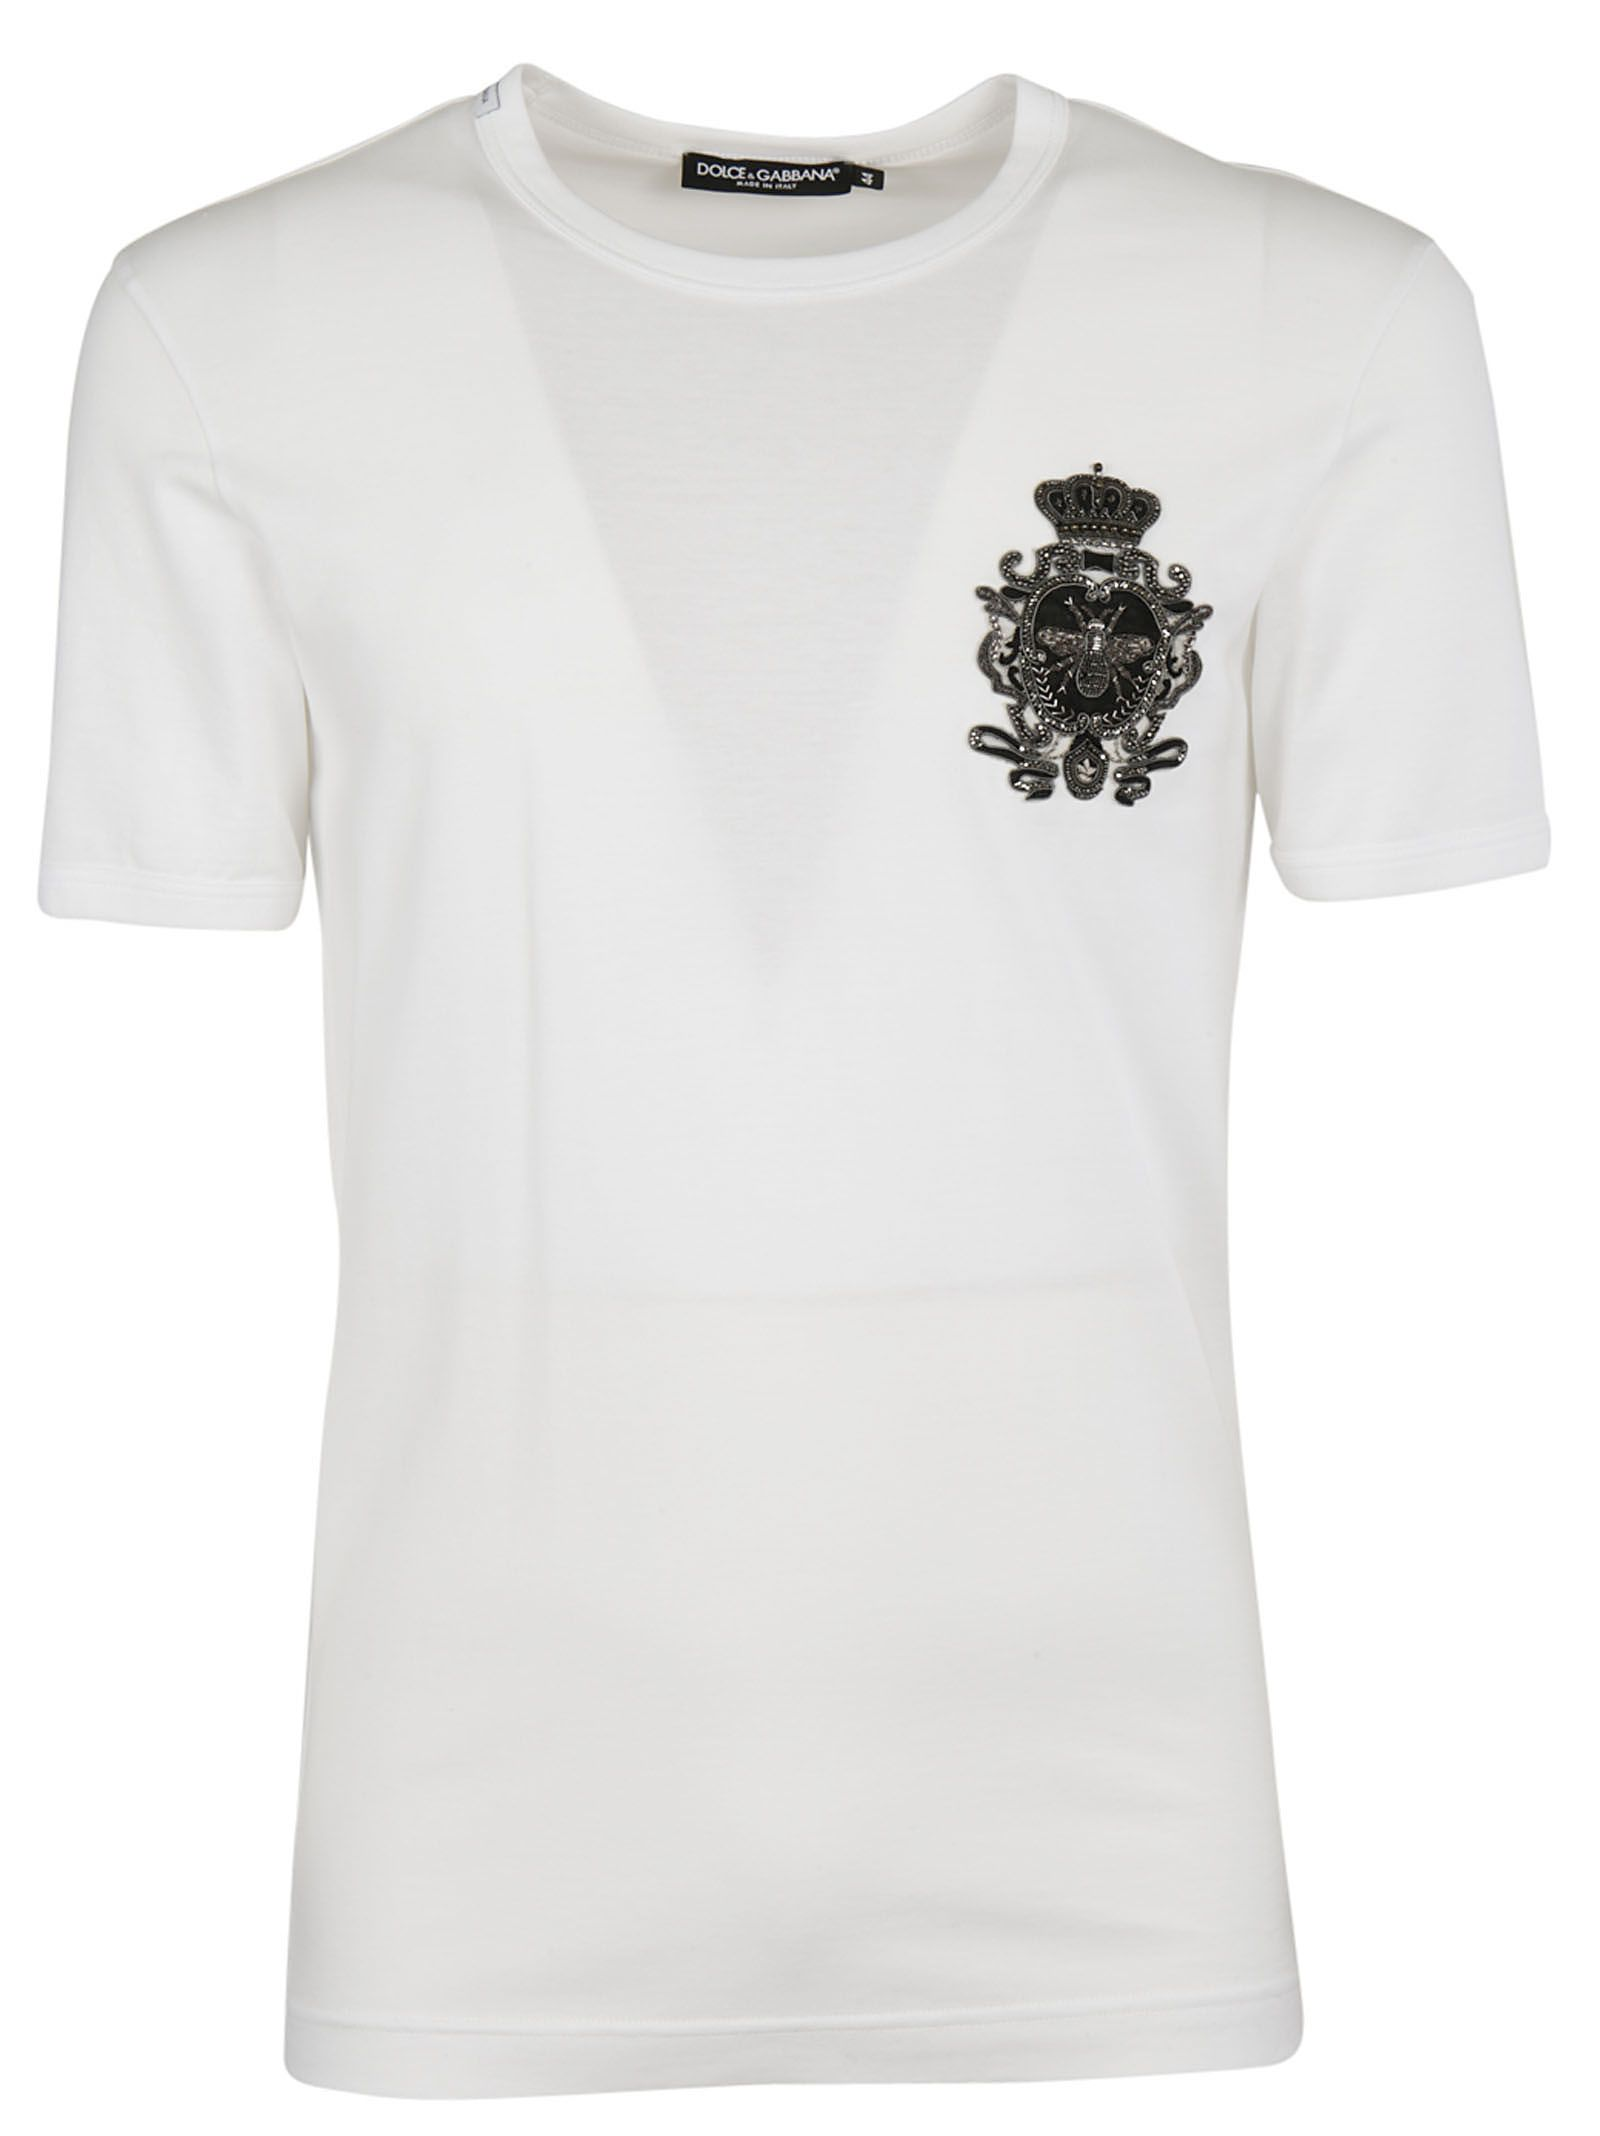 Dolce & Gabbana Crowned Bee Embroidered T-shirt